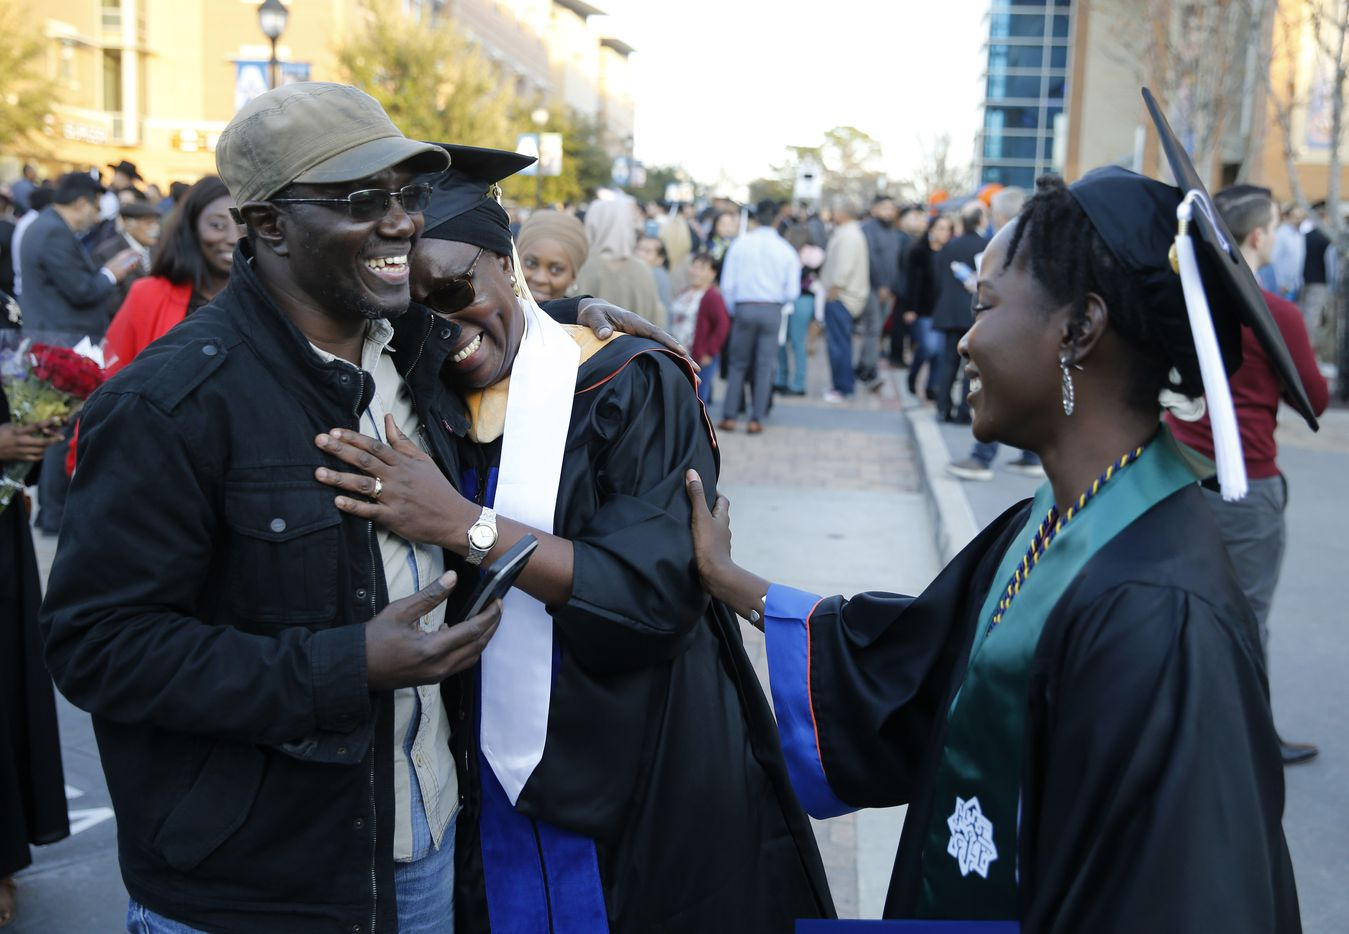 Cheikh Sy hugs his wife Ndeye Ndaw as they share a laugh with their daughter Awa Sy outside College Park Center at the University of Texas at Arlington shortly after graduation ceremonies. Ndeye earned a master's degree and her daughter Awa earned her bachelor's degree.